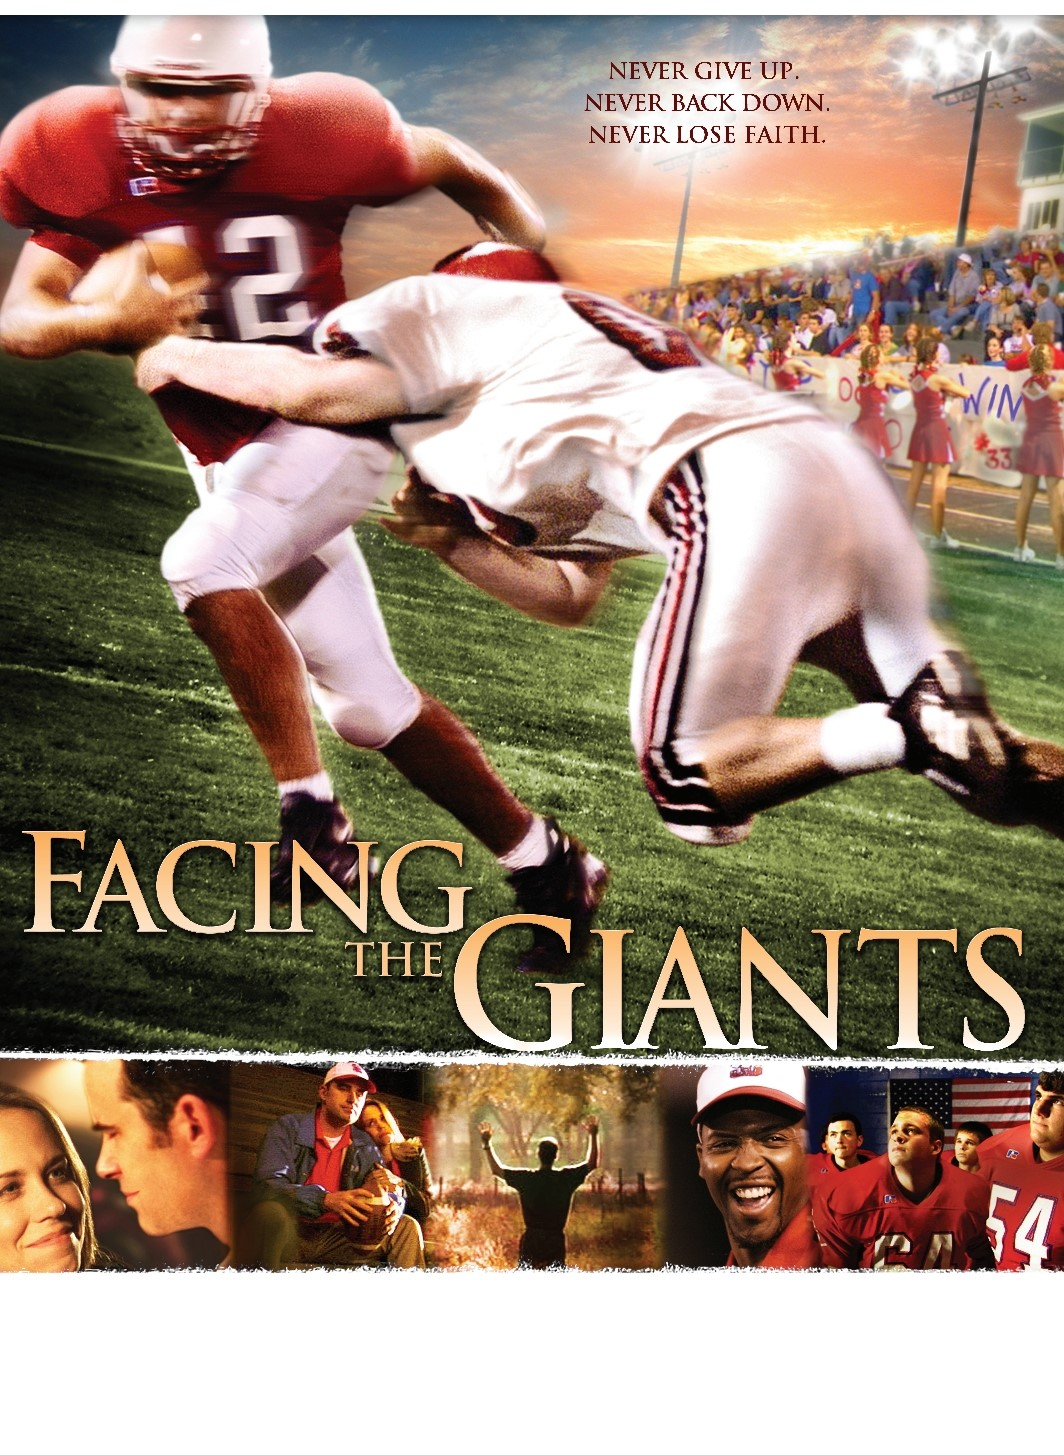 Movie Night - Facing The Giants